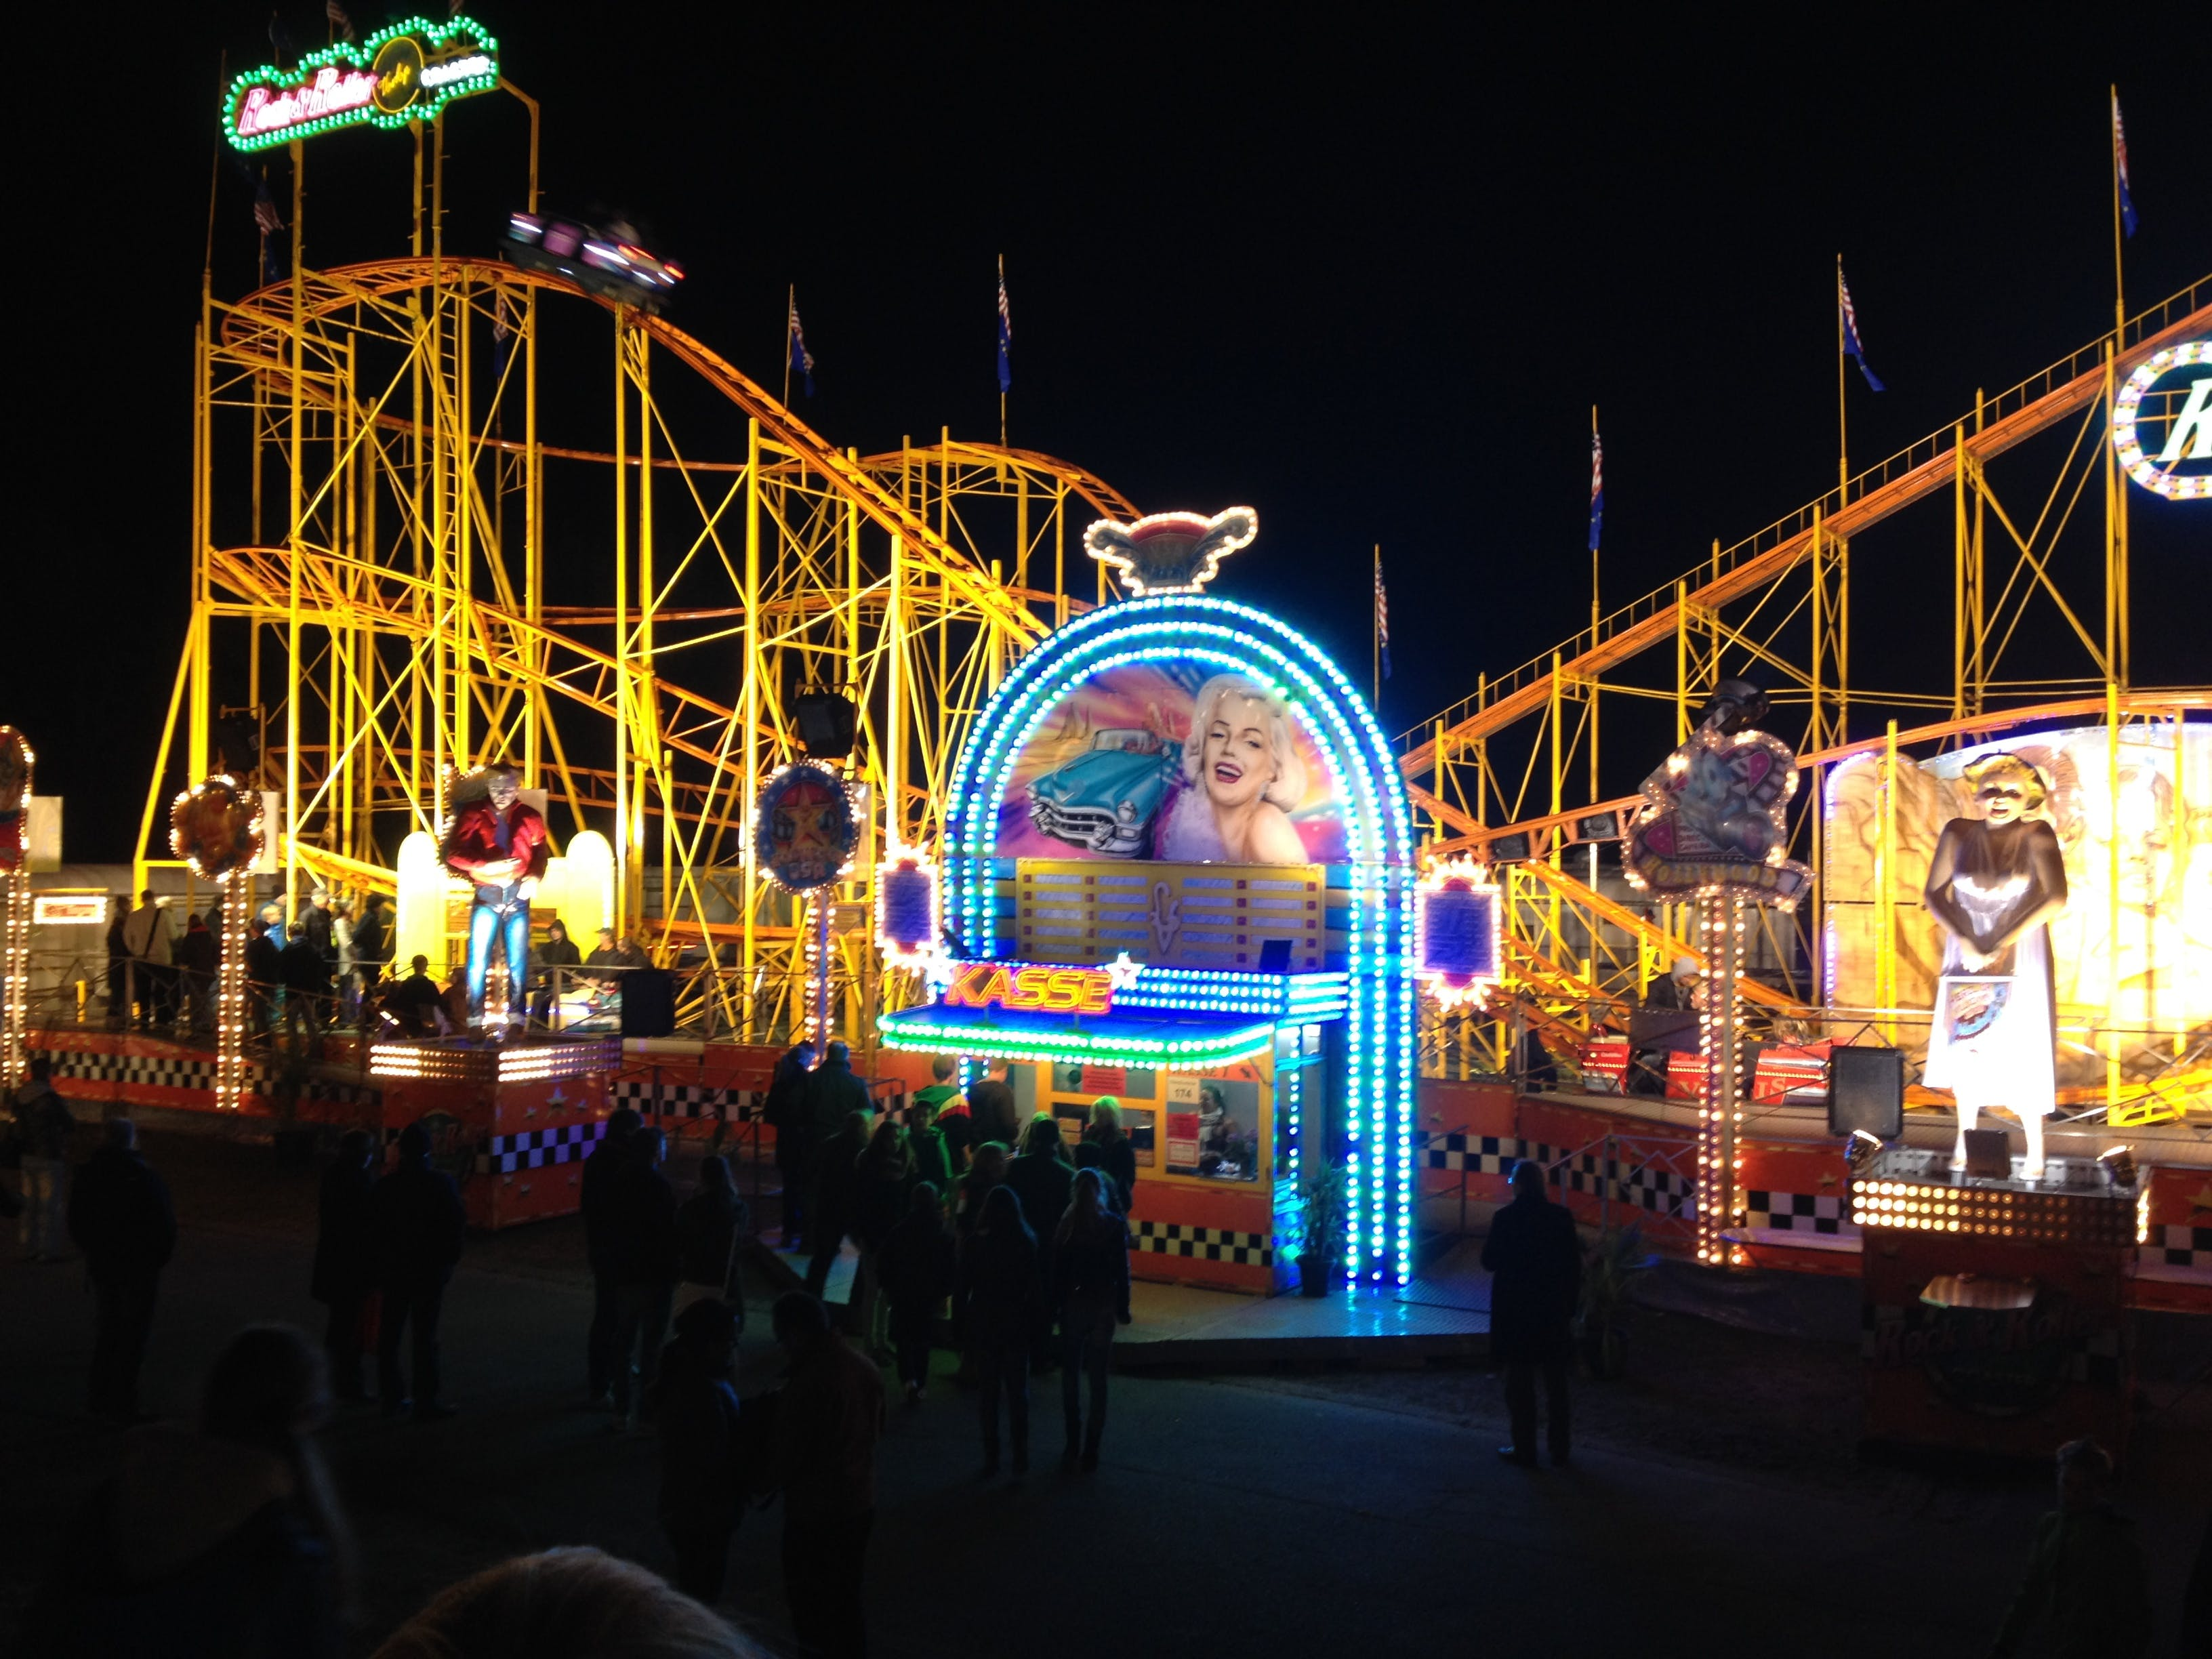 Free stock photo of funfair, roller coaster